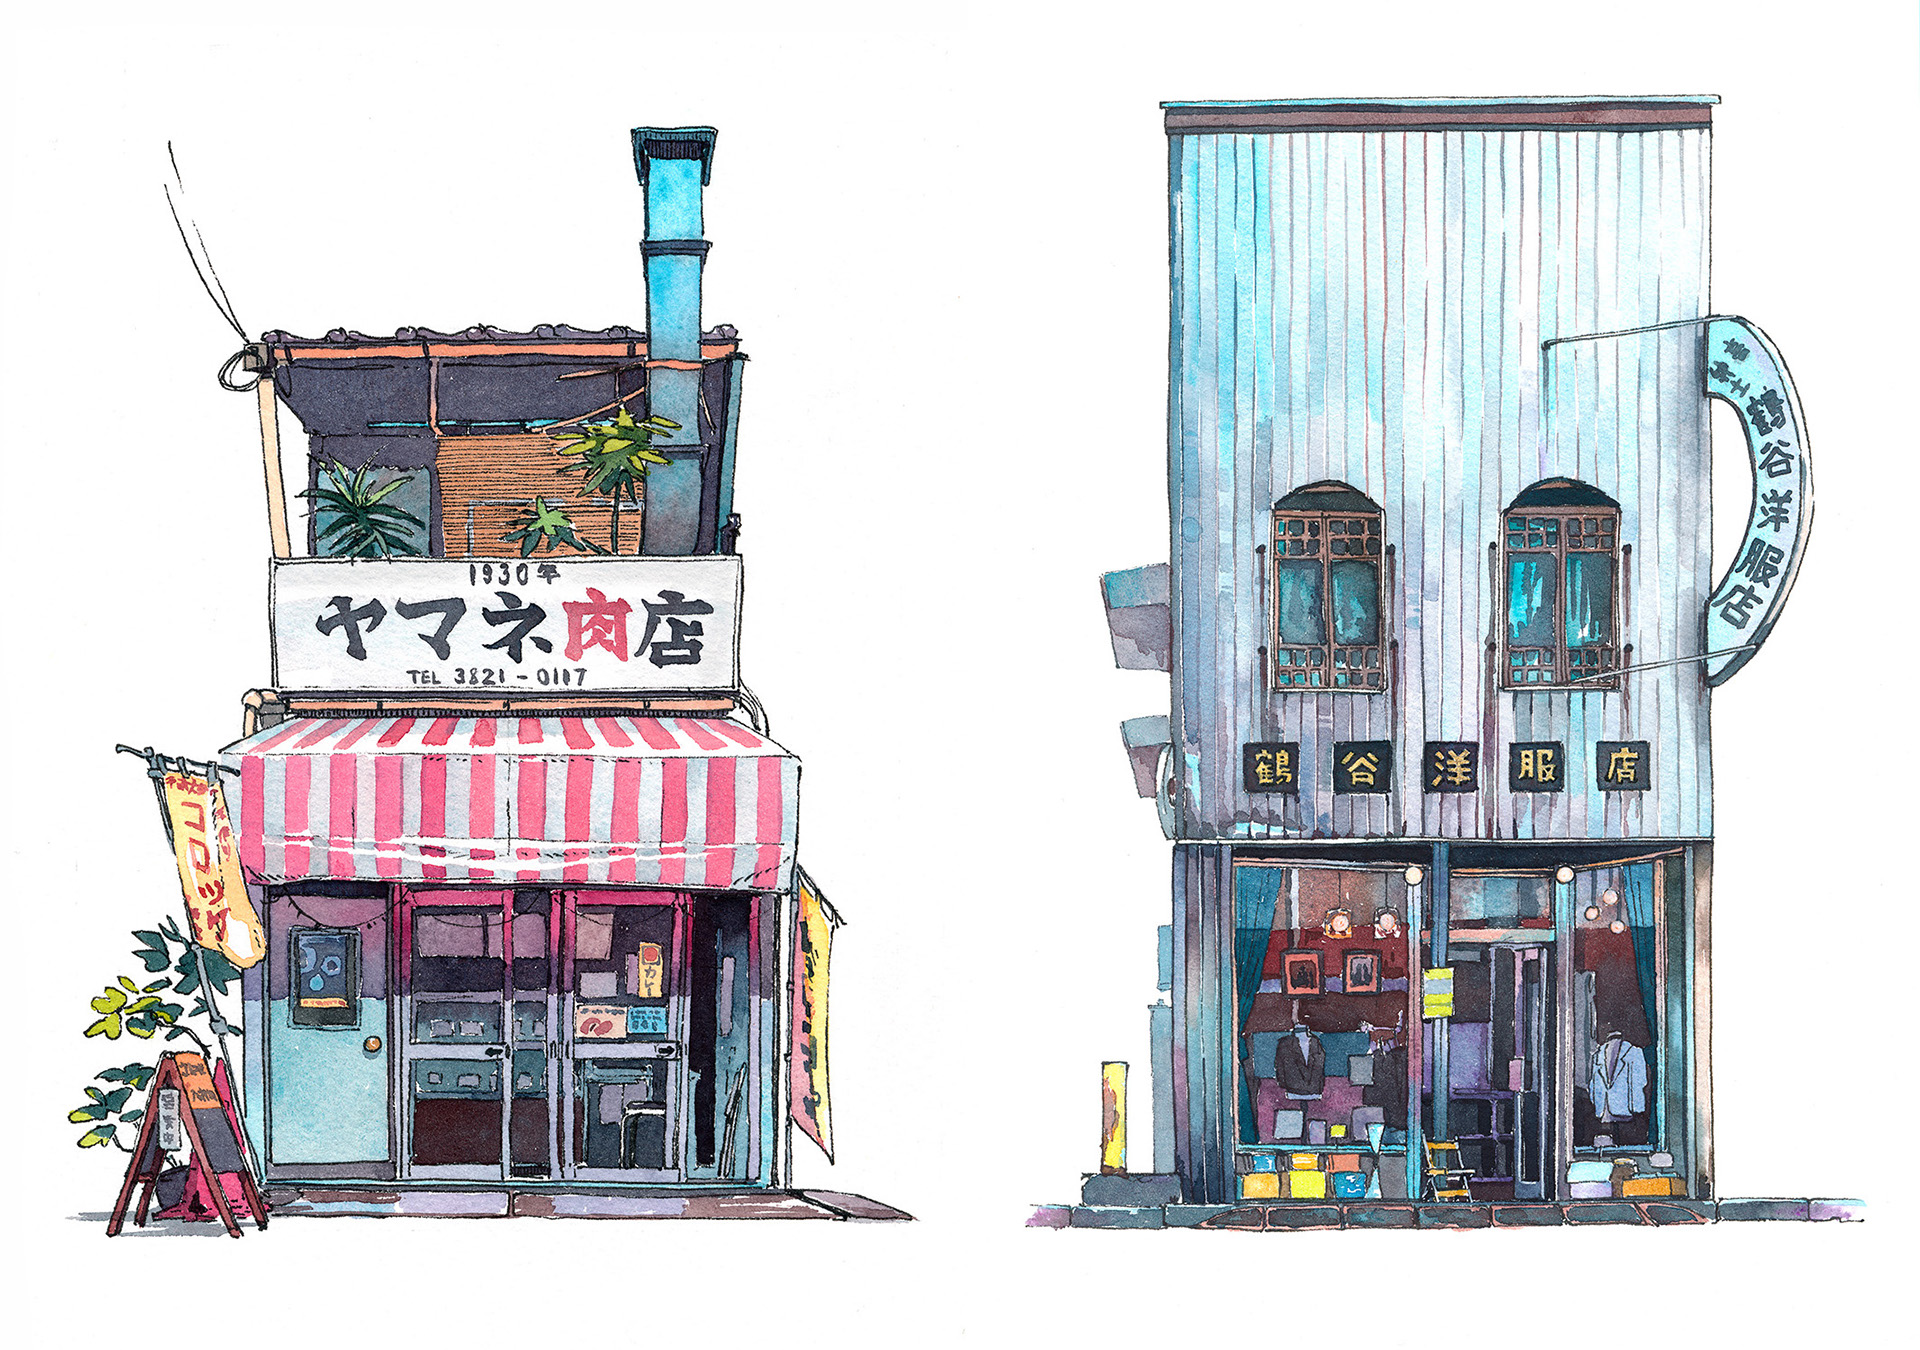 Yamane meat shop from Nippori district and Tsuruya (former) tailors, now retro variety shop from Jinbocho district